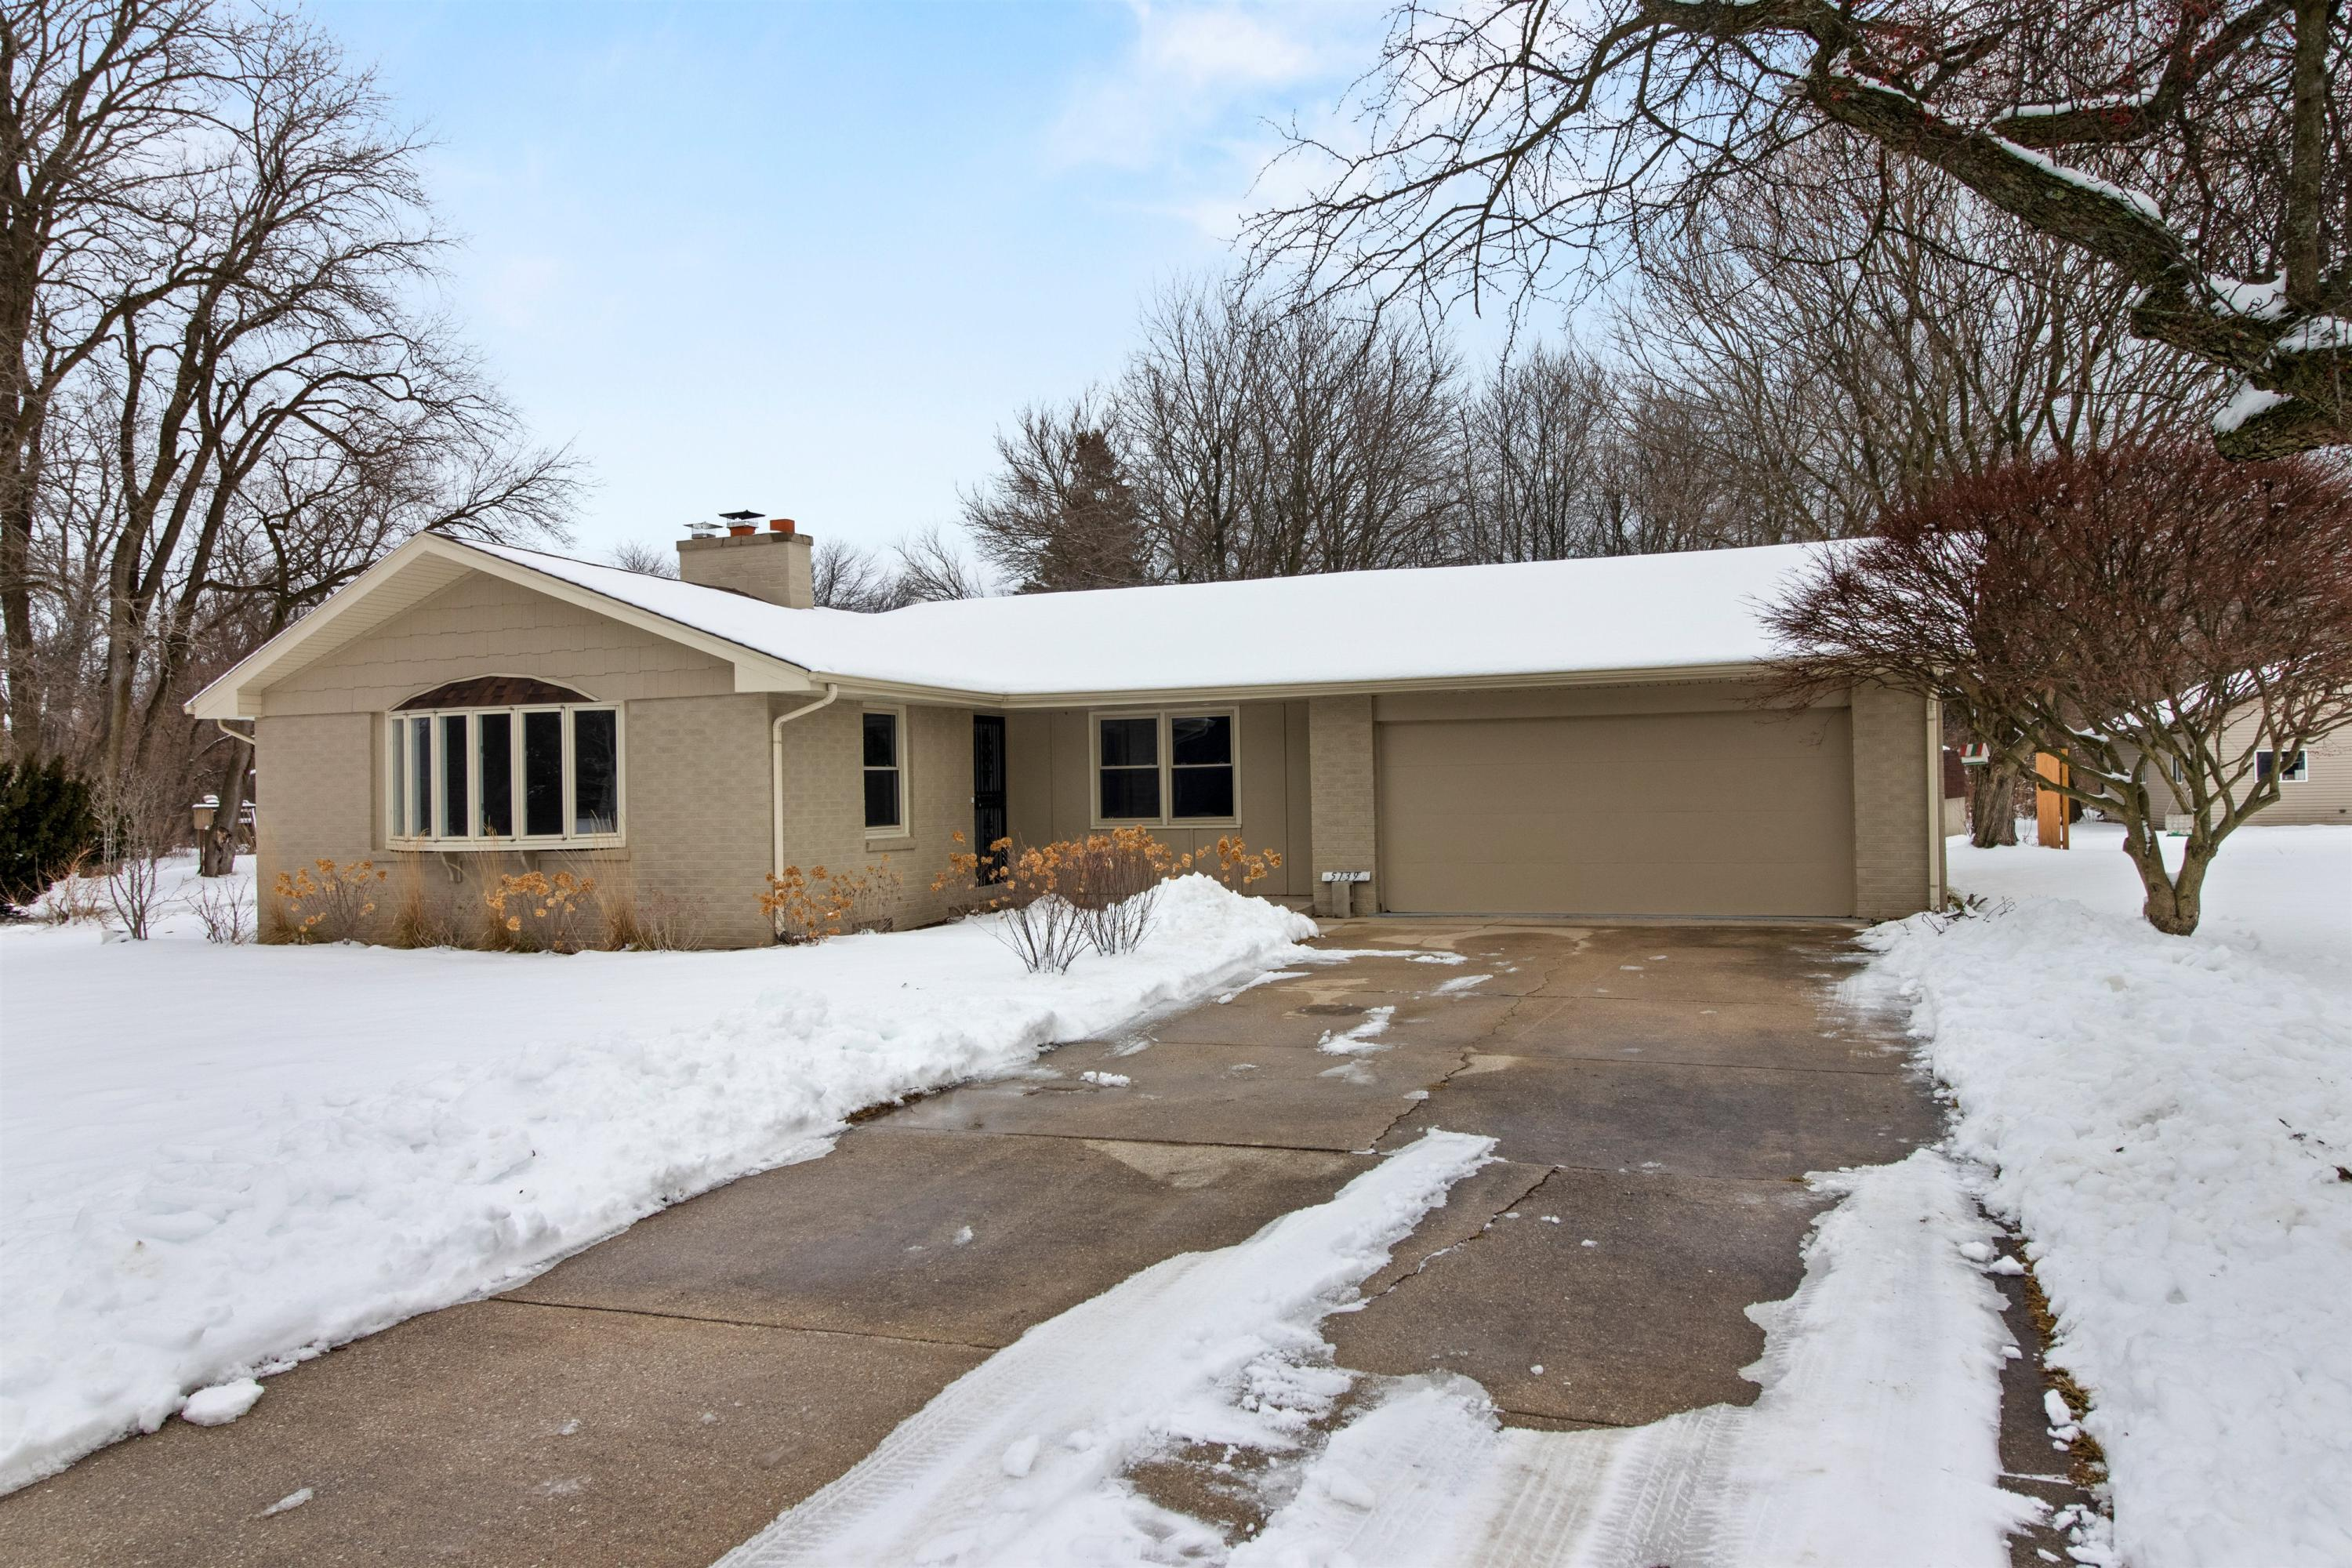 5139 Erie St, Caledonia, Wisconsin 53402, 4 Bedrooms Bedrooms, 8 Rooms Rooms,3 BathroomsBathrooms,Single-family,For Sale,Erie St,1723520